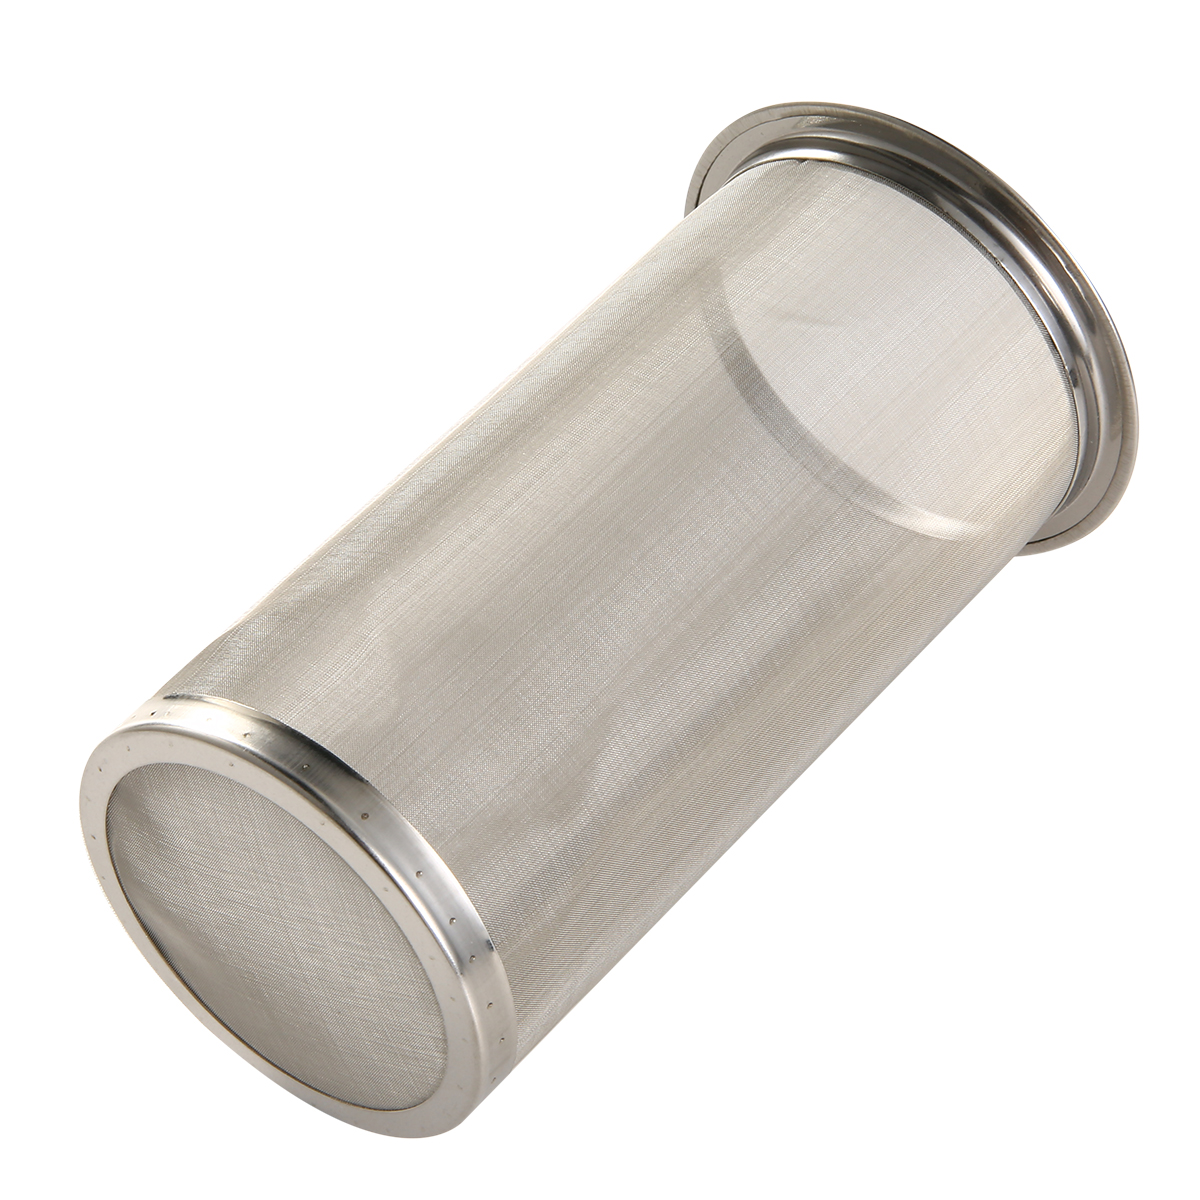 Reusable Wide Mouth Mason Jars Mesh Strainer Cylindrical Stainless Steel Filter Basket Tool For DIY Cold Brew Coffee Maker